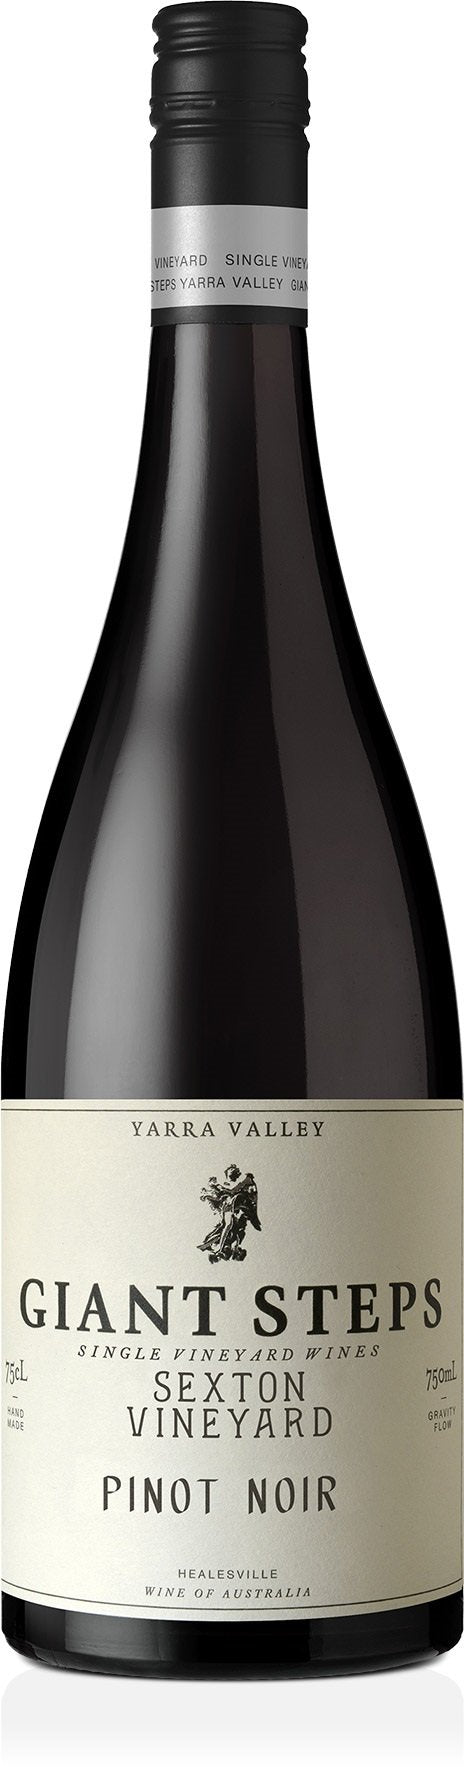 2019 Giant Steps Sexton Vineyard Pinot Noir 6pk